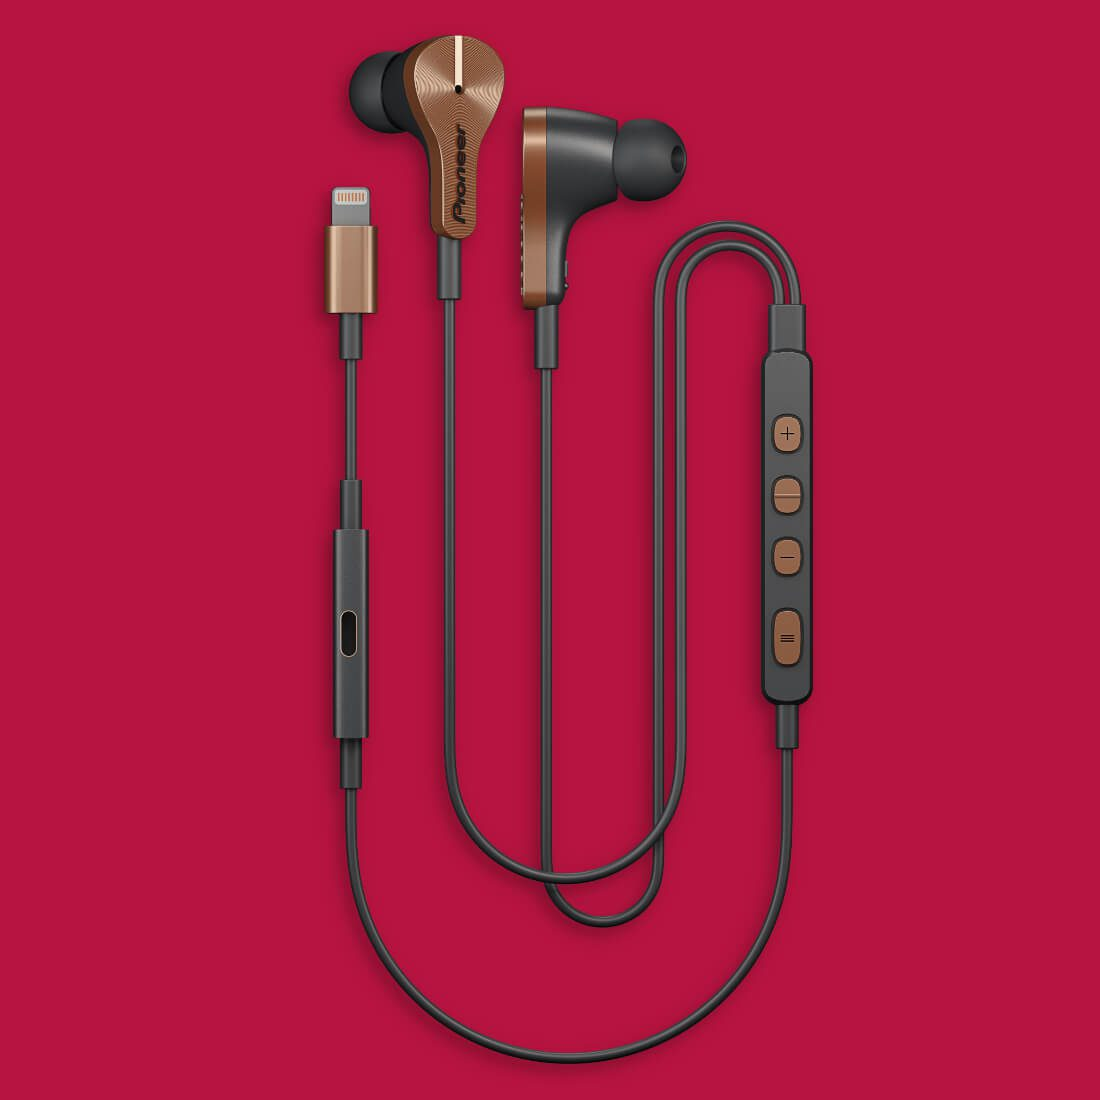 rayz-plus-earphones_soldier_laydown_bronze_redbg_shadow